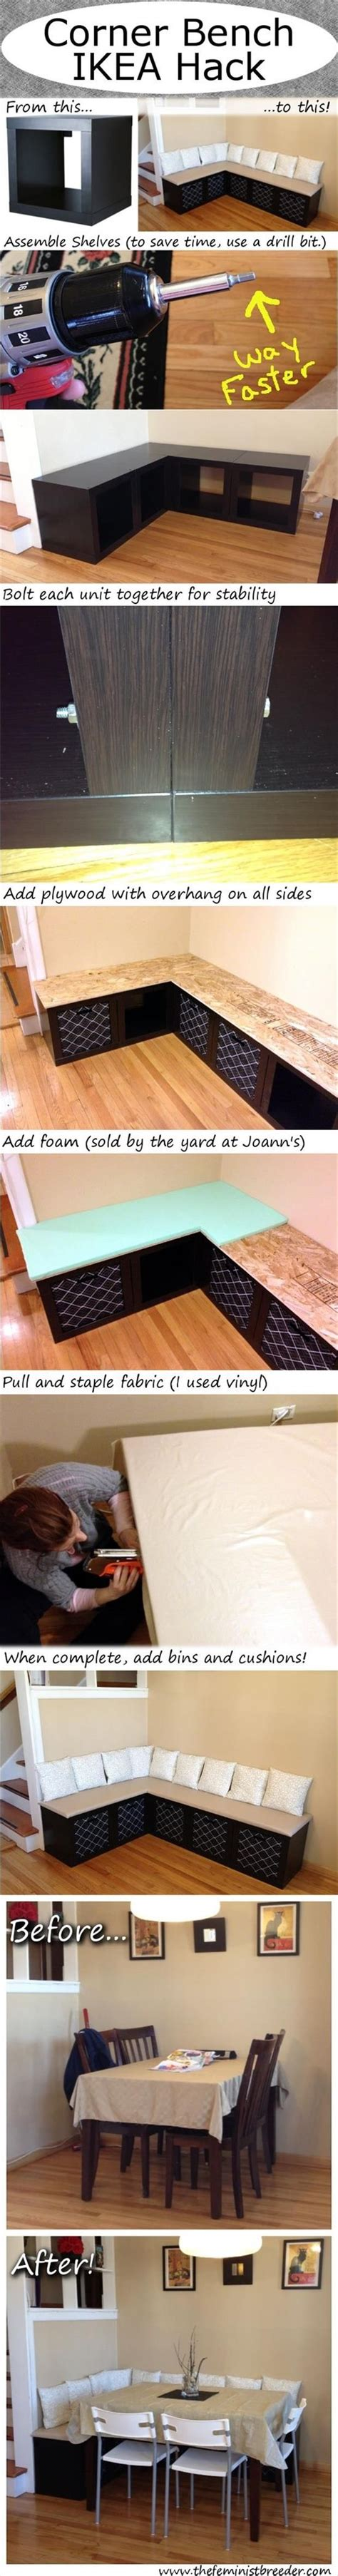 ikea corner bench diy ikea corner bench tutorial pictures photos and images for facebook tumblr